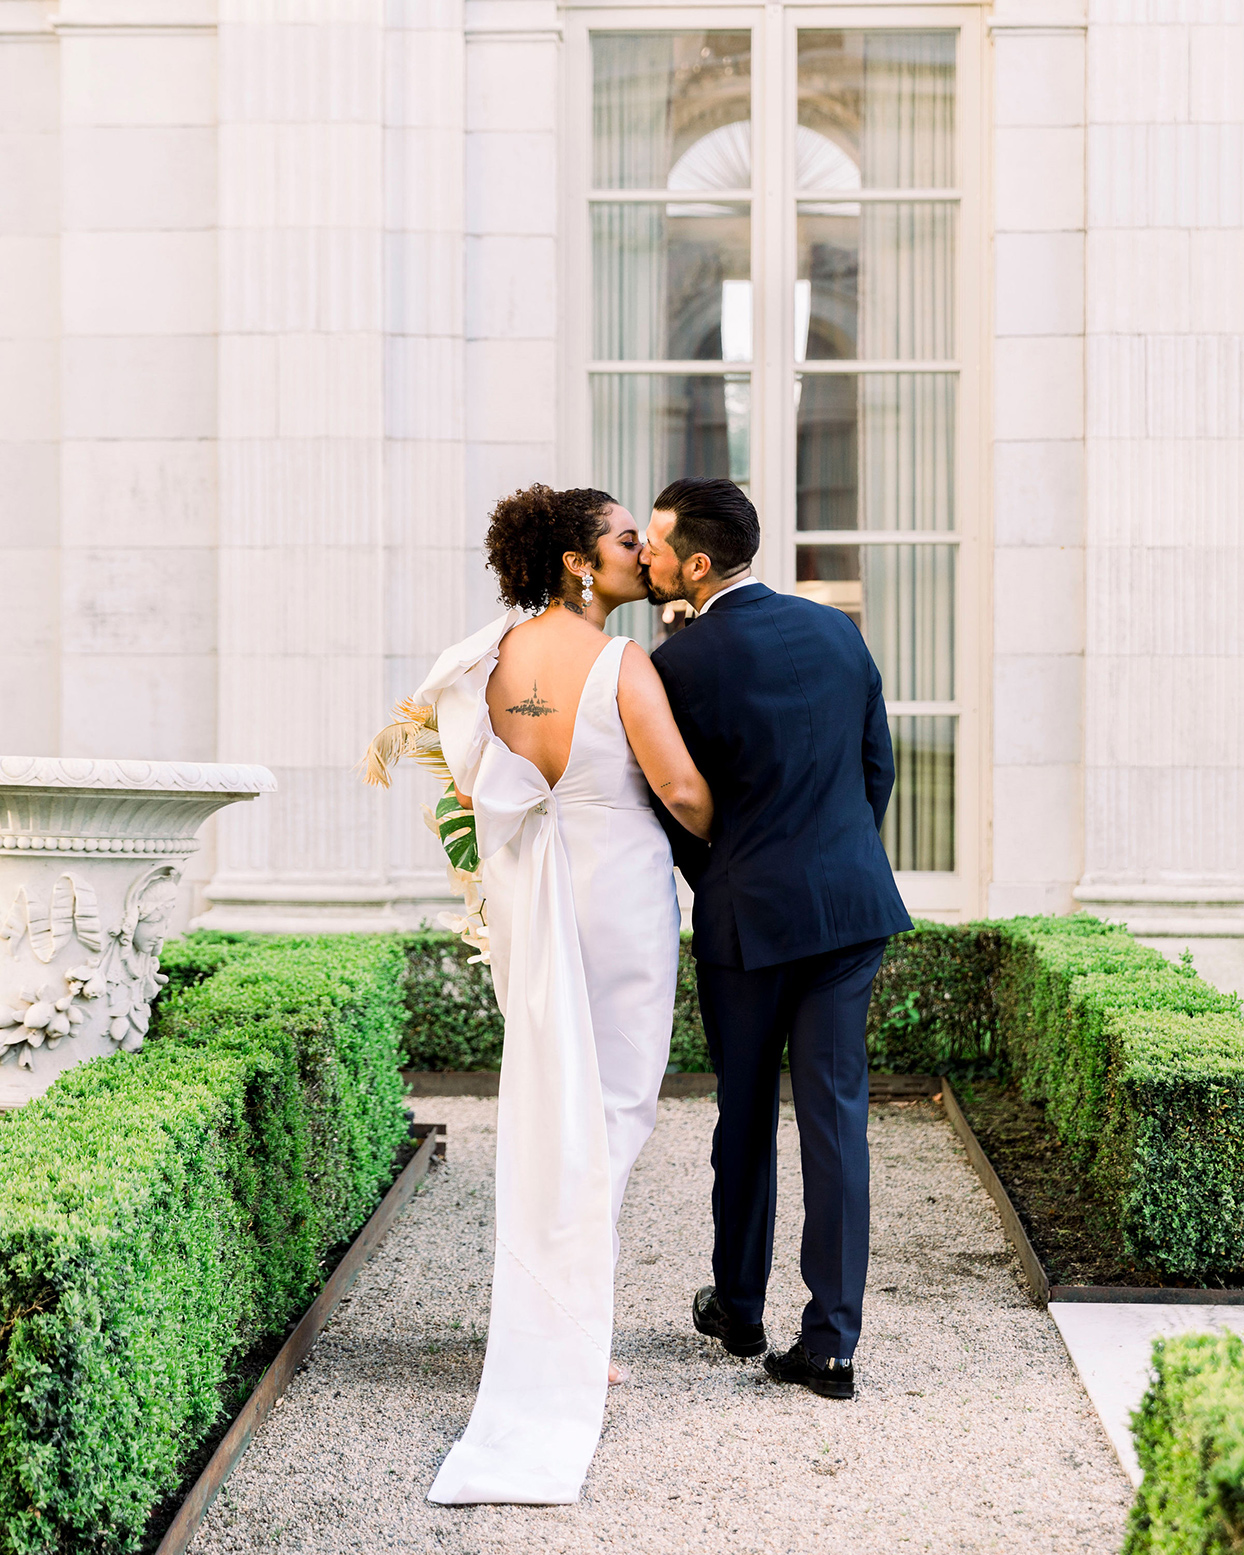 dalila elliot wedding couple kiss in front of mansion